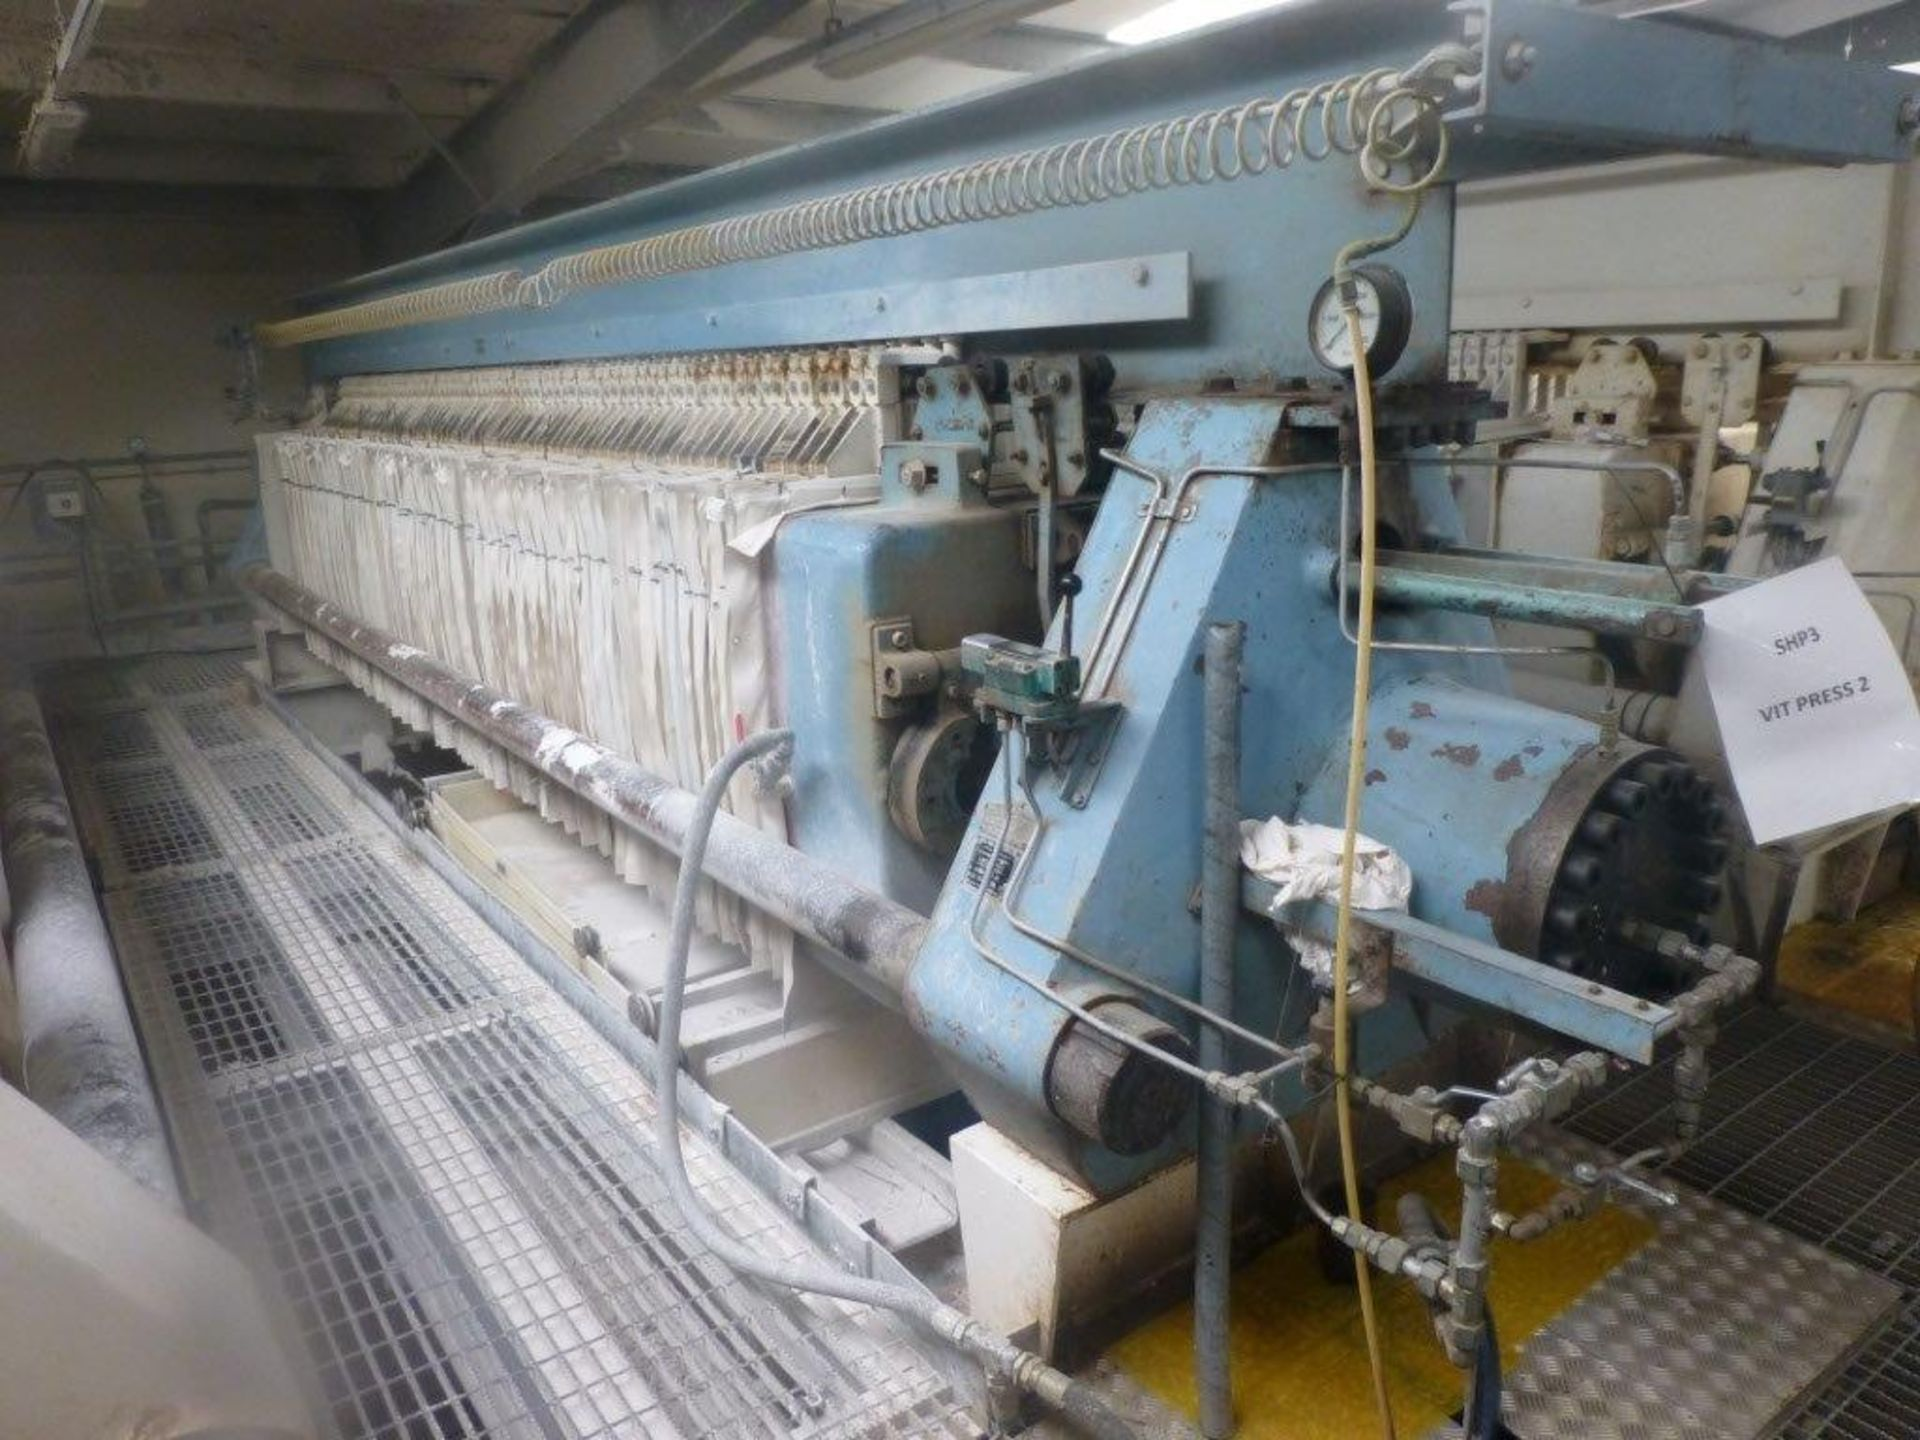 Lot 6 - William Boulton Type No 3 filter press, serial No FS-7684 (1974), Plant No SHP VIT PRESS 2 overall